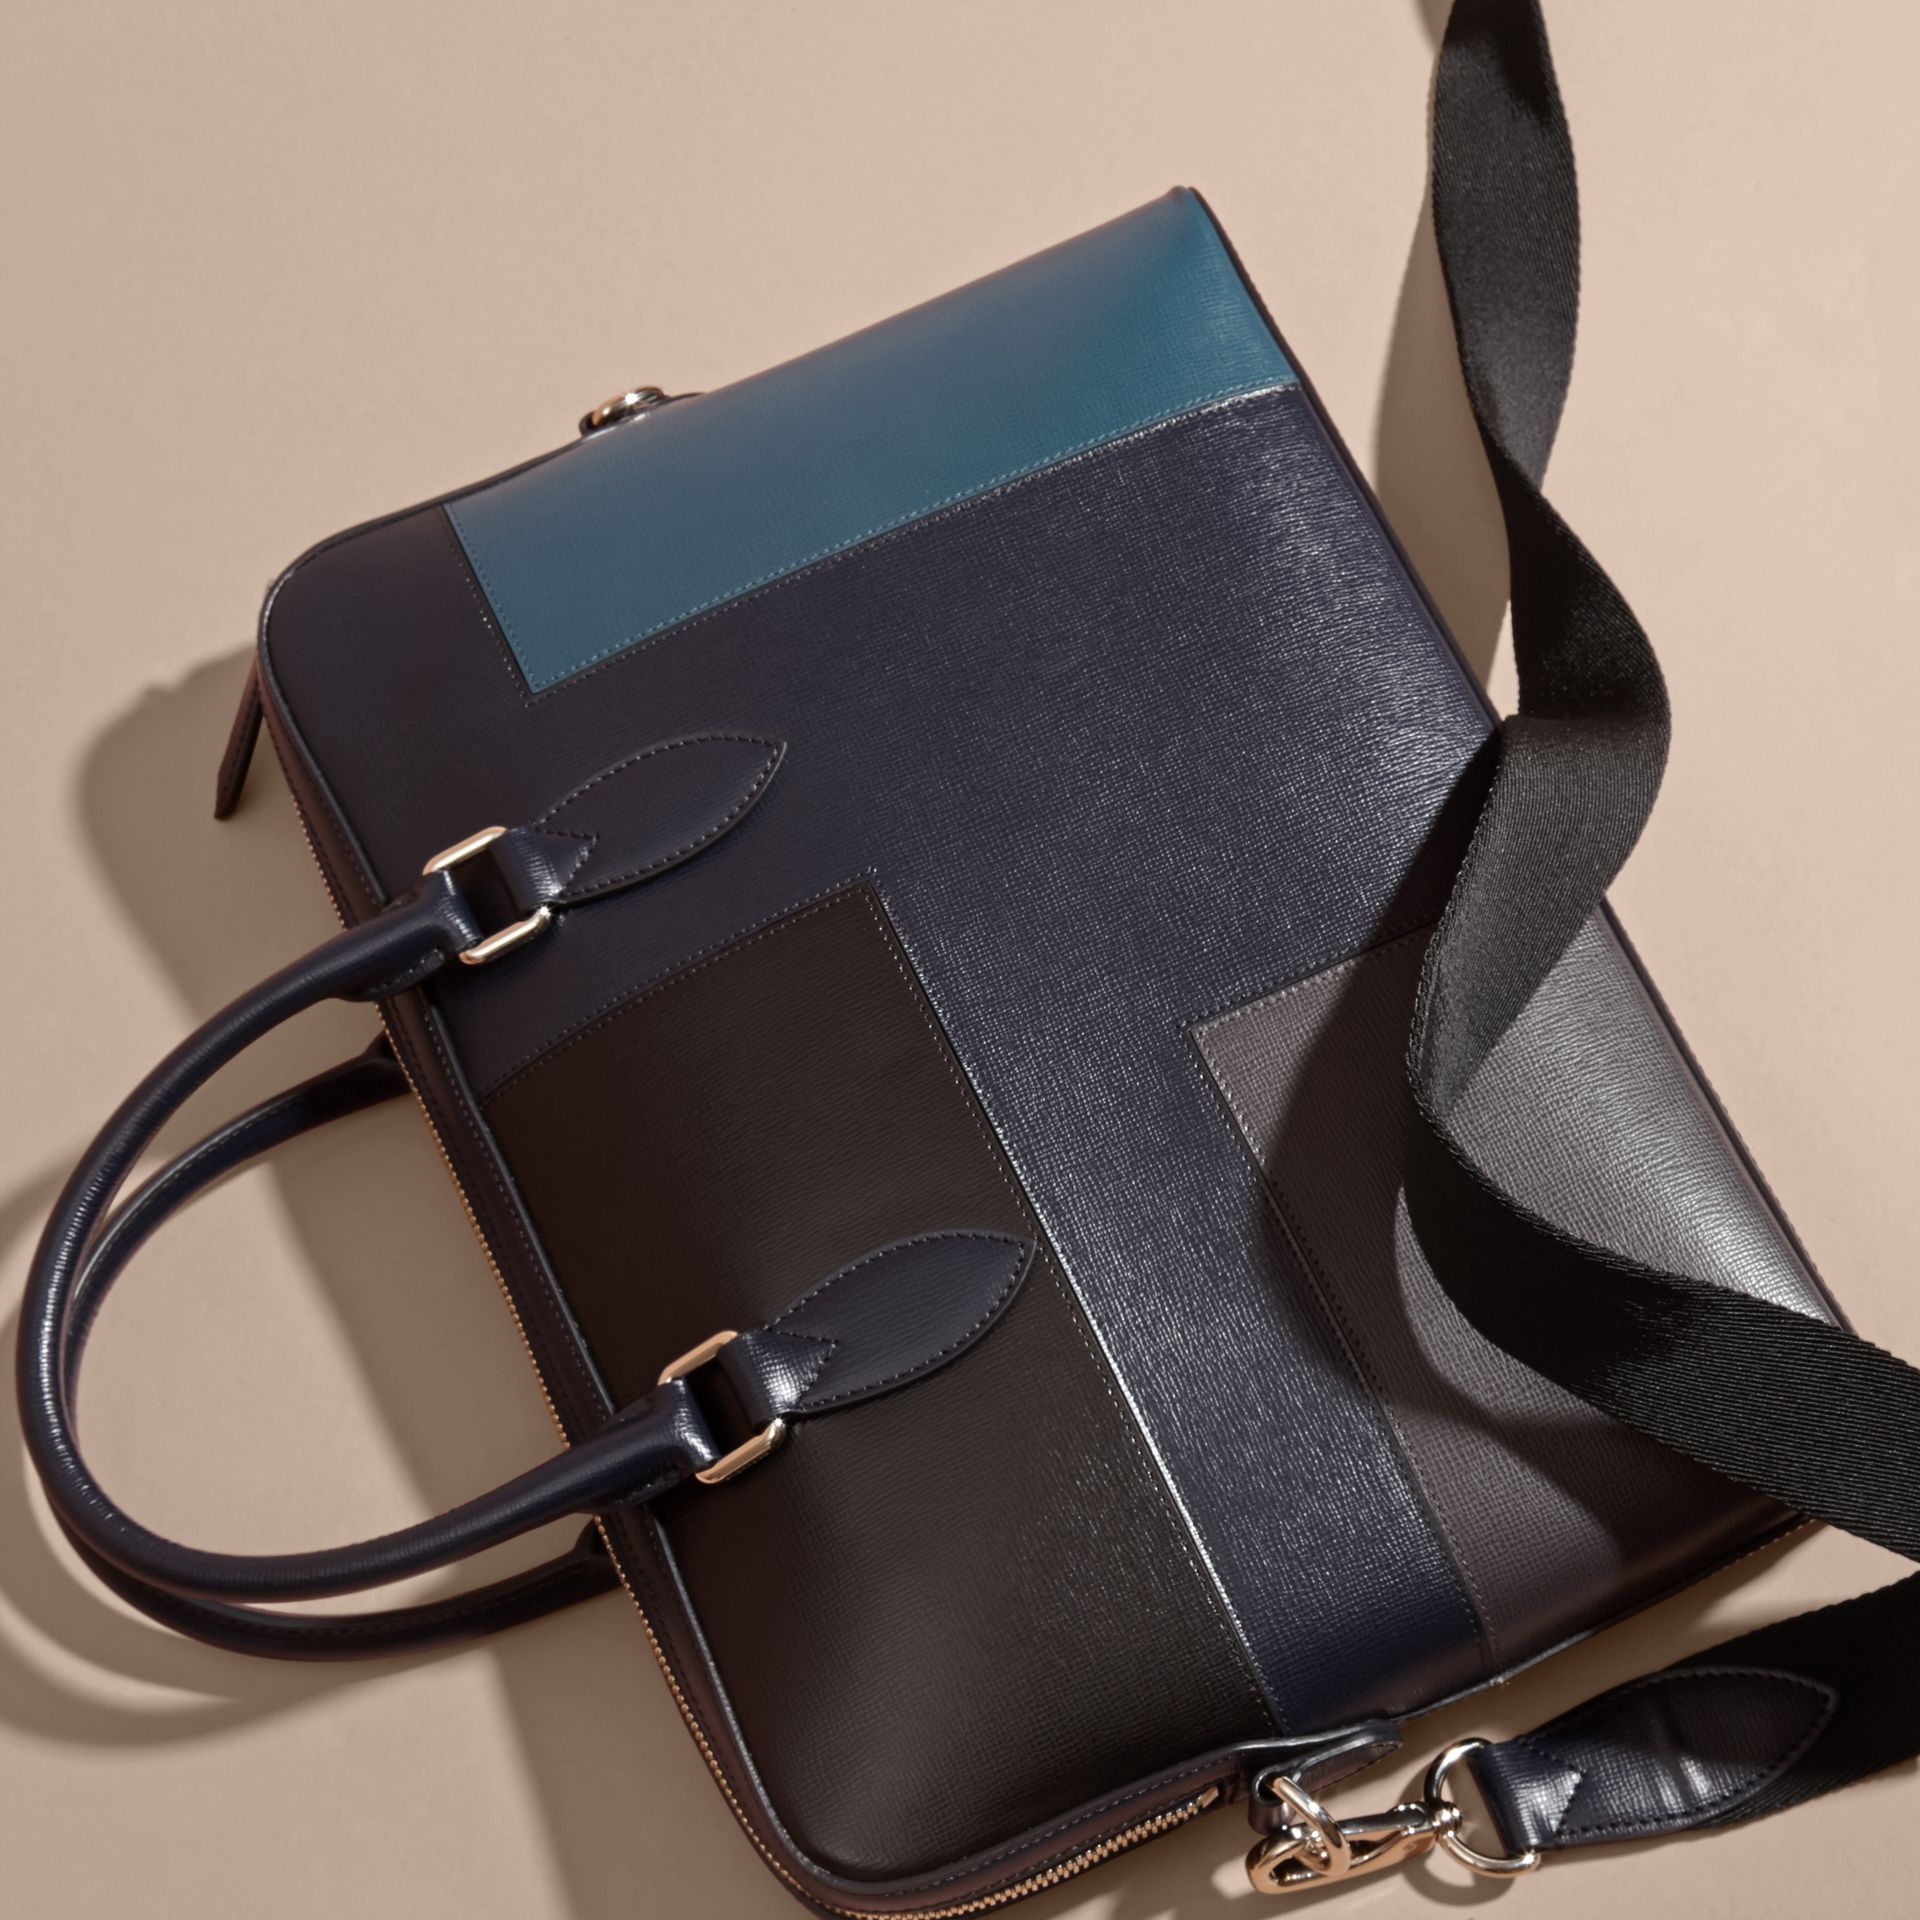 Dark navy The Slim Barrow Bag in Patchwork London Leather Dark Navy - gallery image 5